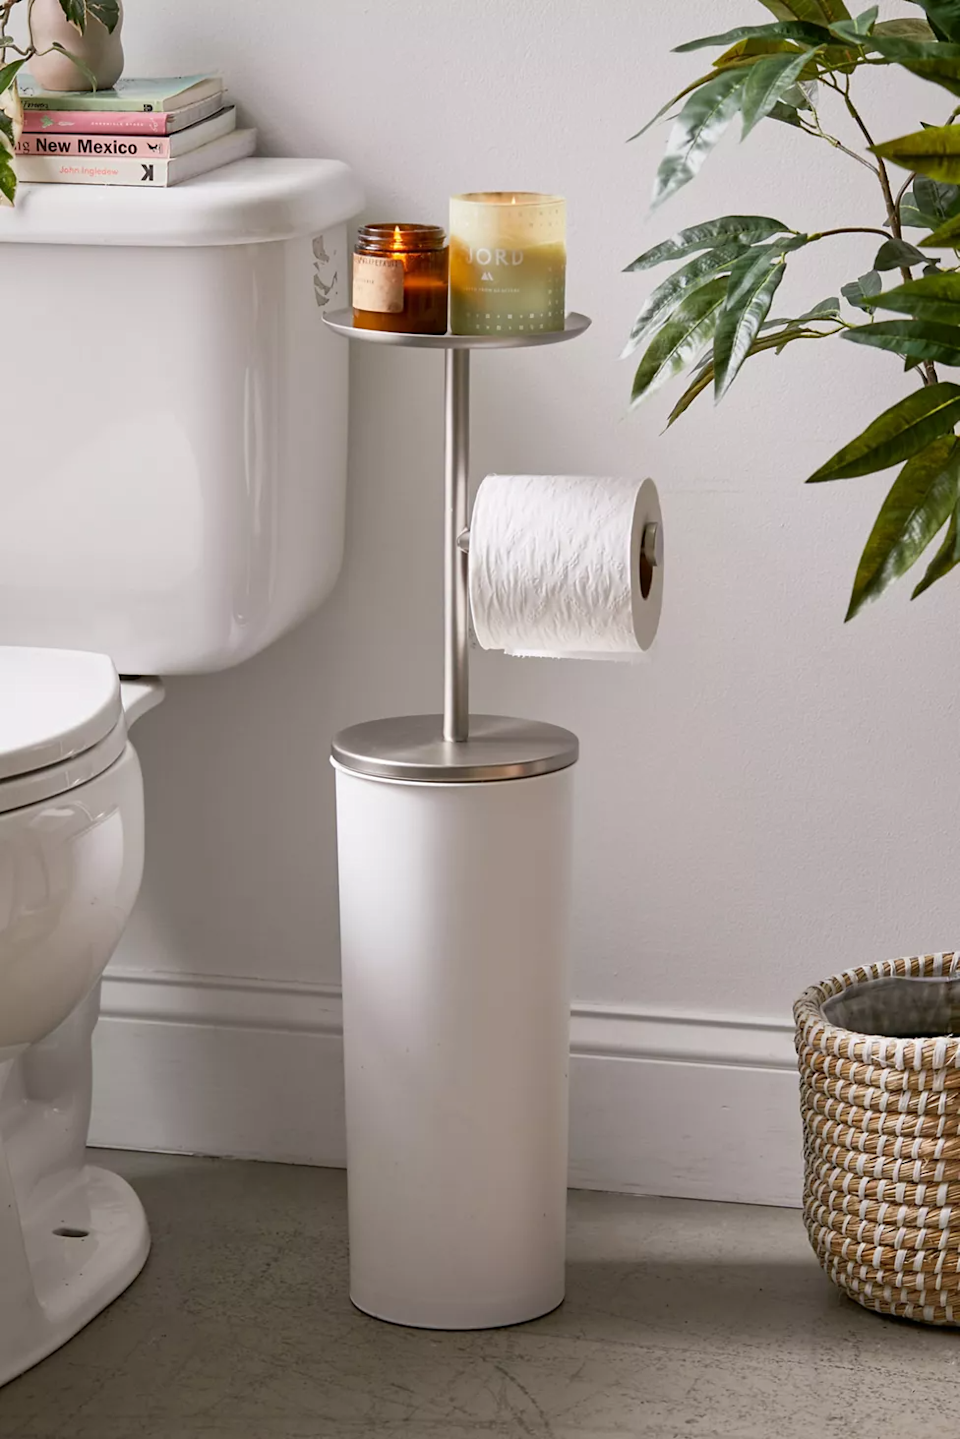 "<h3><a href=""https://www.urbanoutfitters.com/shop/jonah-toilet-paper-storage-stand"" rel=""nofollow noopener"" target=""_blank"" data-ylk=""slk:Jonah Toilet Paper Storage Stand"" class=""link rapid-noclick-resp"">Jonah Toilet Paper Storage Stand</a></h3><br><strong>When you don't have a laundry room to stash all those extra TP rolls in</strong>: This slim unit was designed to hold extra rolls of your toilet-paper stock AND slide neatly into that tight space next to your golden throne.<br><br><strong>Urban Outfitters</strong> Jonah Toilet Paper Storage Stand, $, available at <a href=""https://go.skimresources.com/?id=30283X879131&url=https%3A%2F%2Fwww.urbanoutfitters.com%2Fshop%2Fjonah-toilet-paper-storage-stand"" rel=""nofollow noopener"" target=""_blank"" data-ylk=""slk:Urban Outfitters"" class=""link rapid-noclick-resp"">Urban Outfitters</a>"